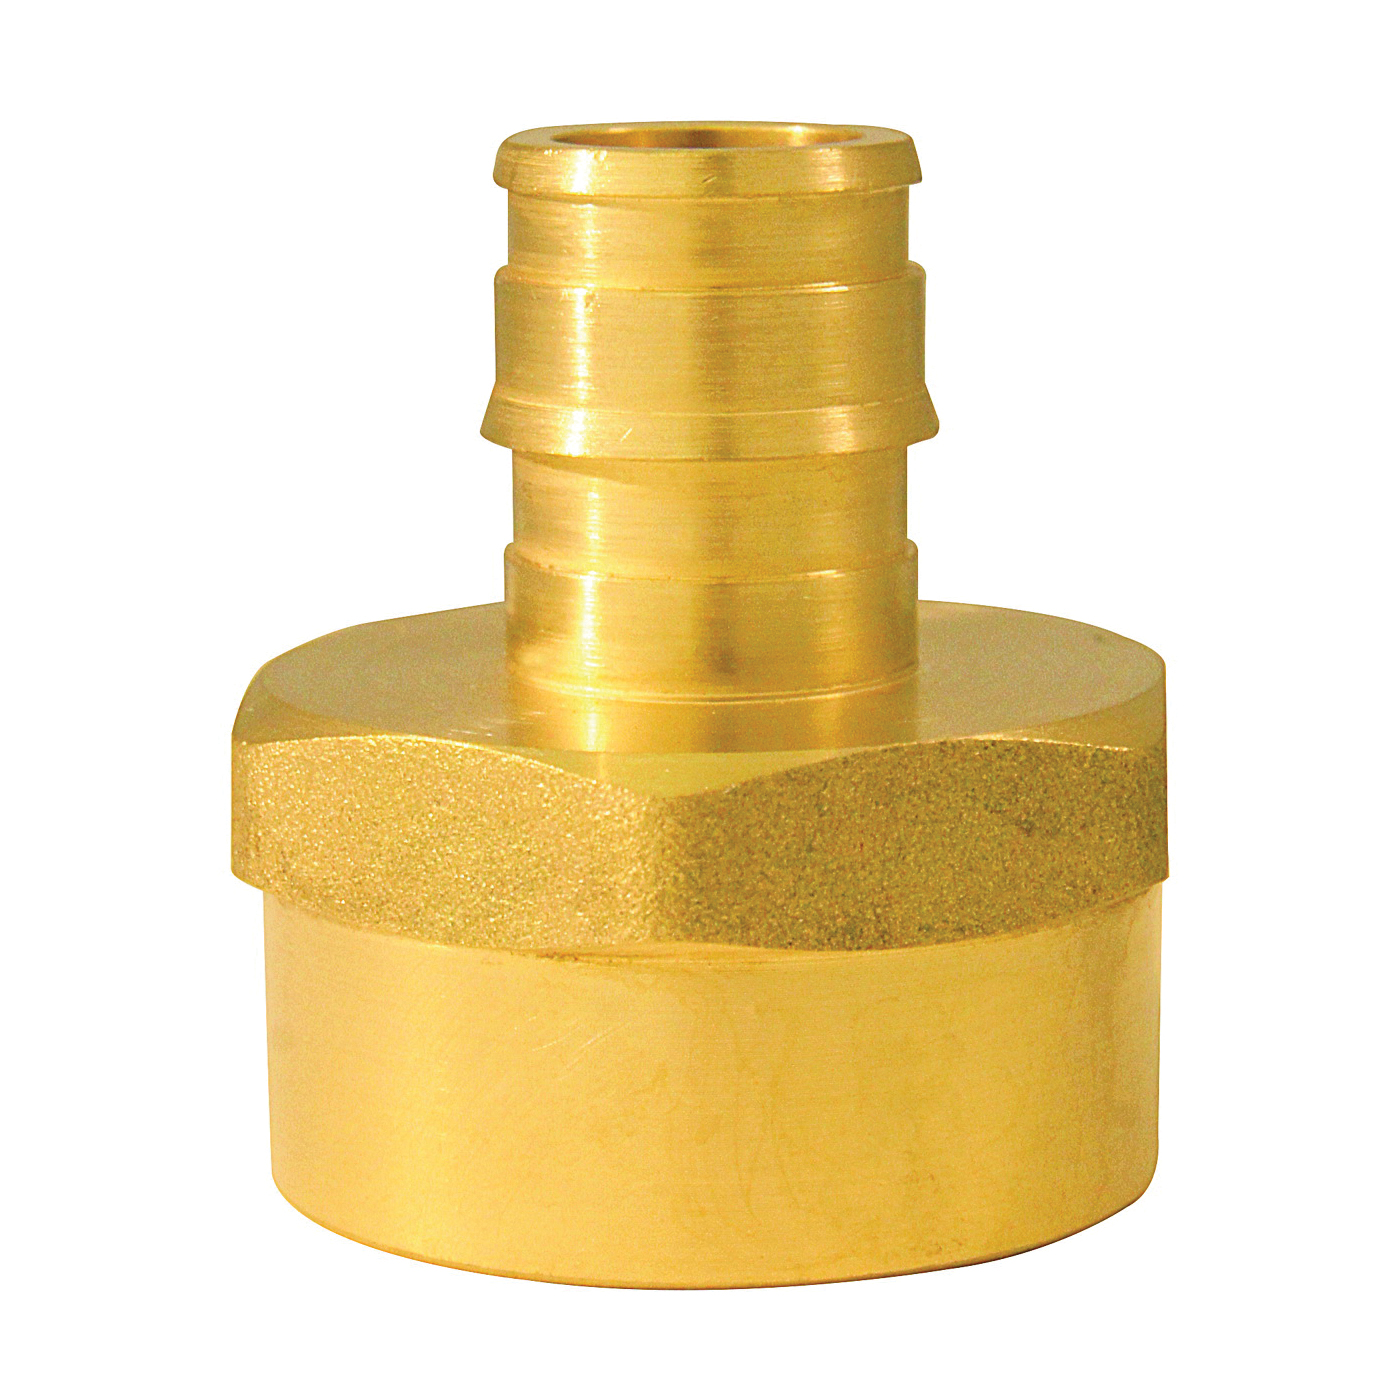 Picture of Apollo ExpansionPEX EPXFA12345PK Reducing Adapter, 1/2 x 3/4 in, Barb x FNPT, Brass, 200 psi Pressure